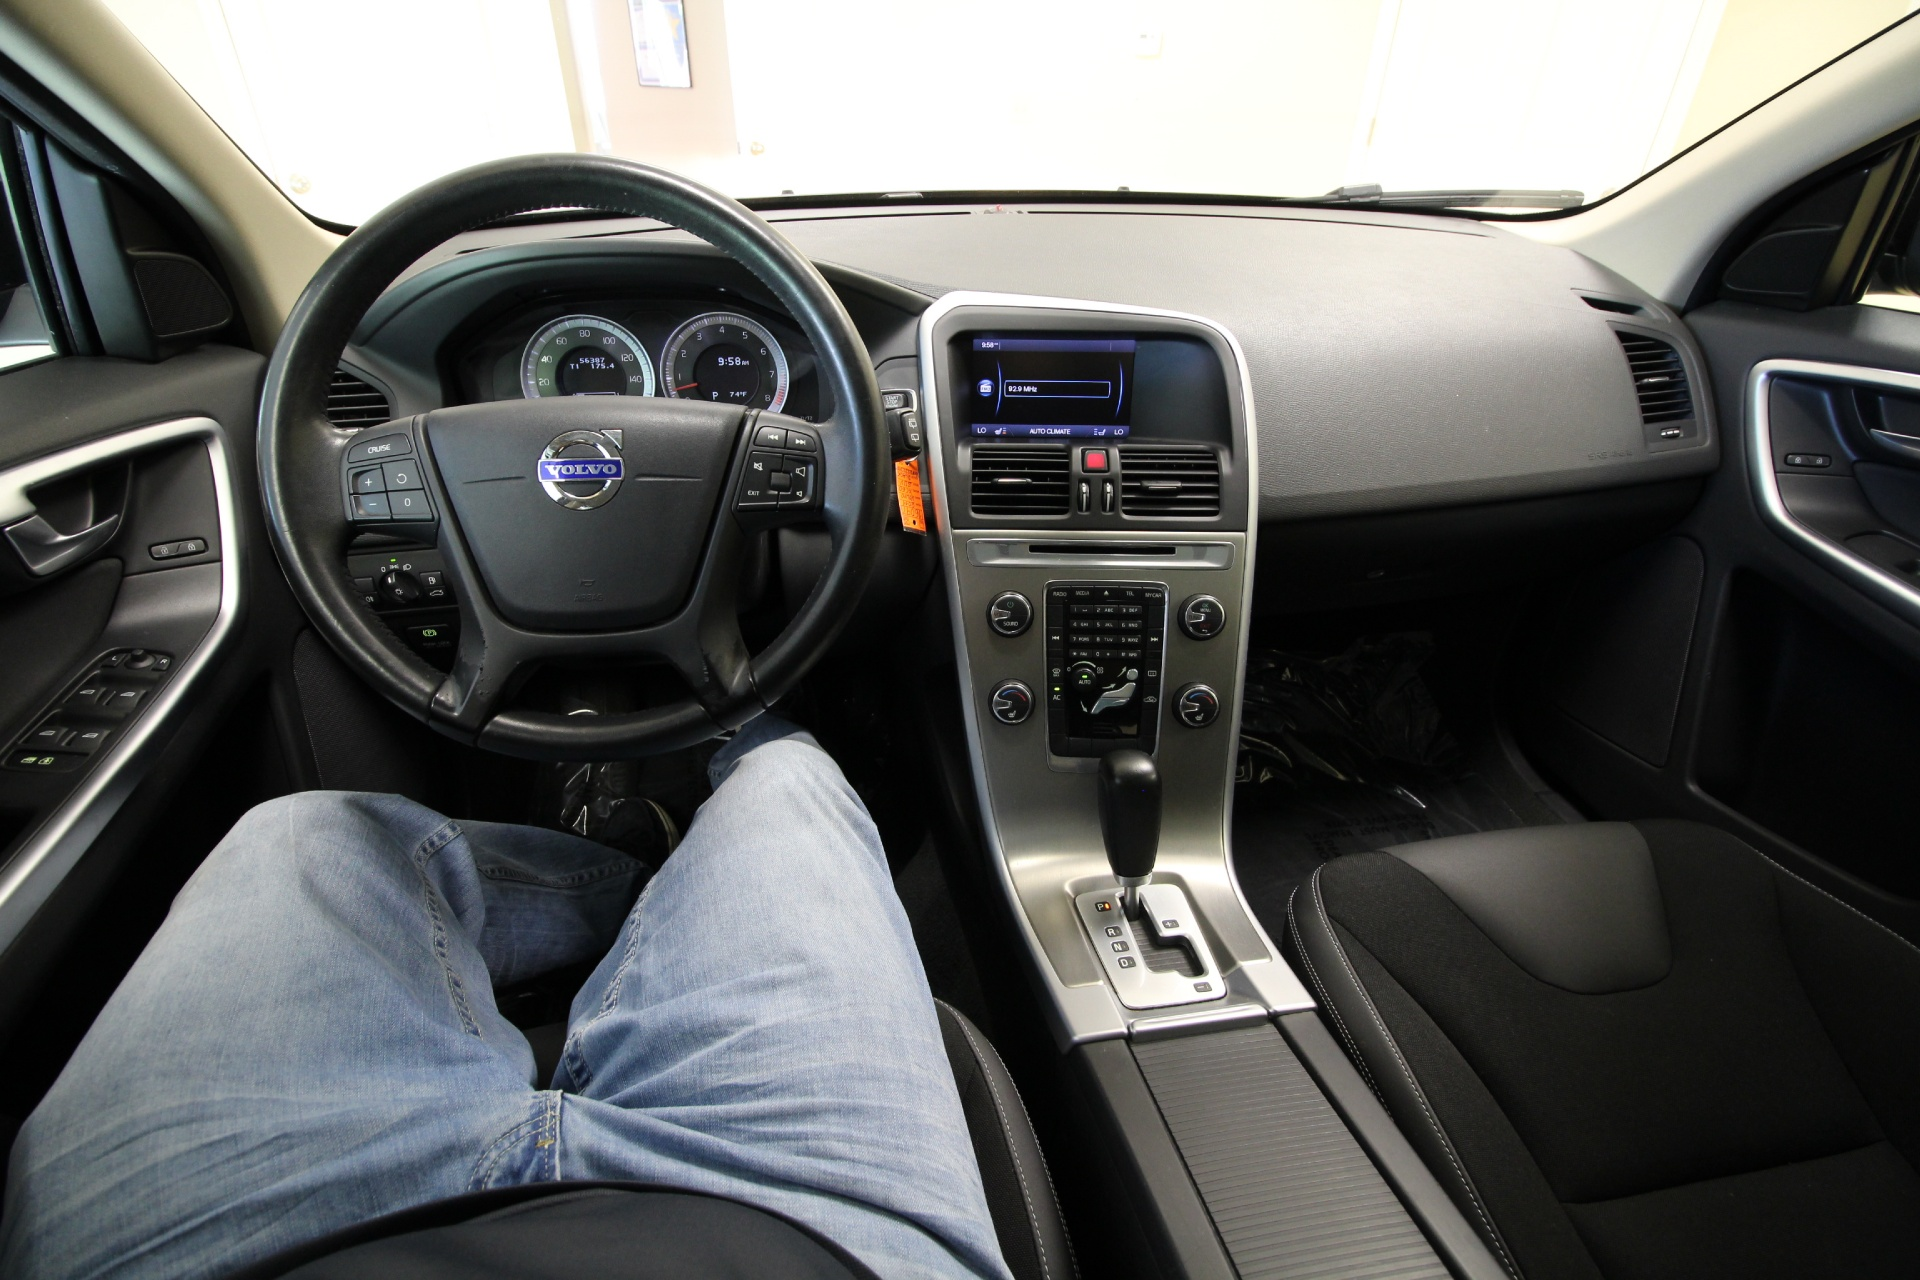 cross photo reviews all ny new dealers safety price volvo wheel sedan photos drive country